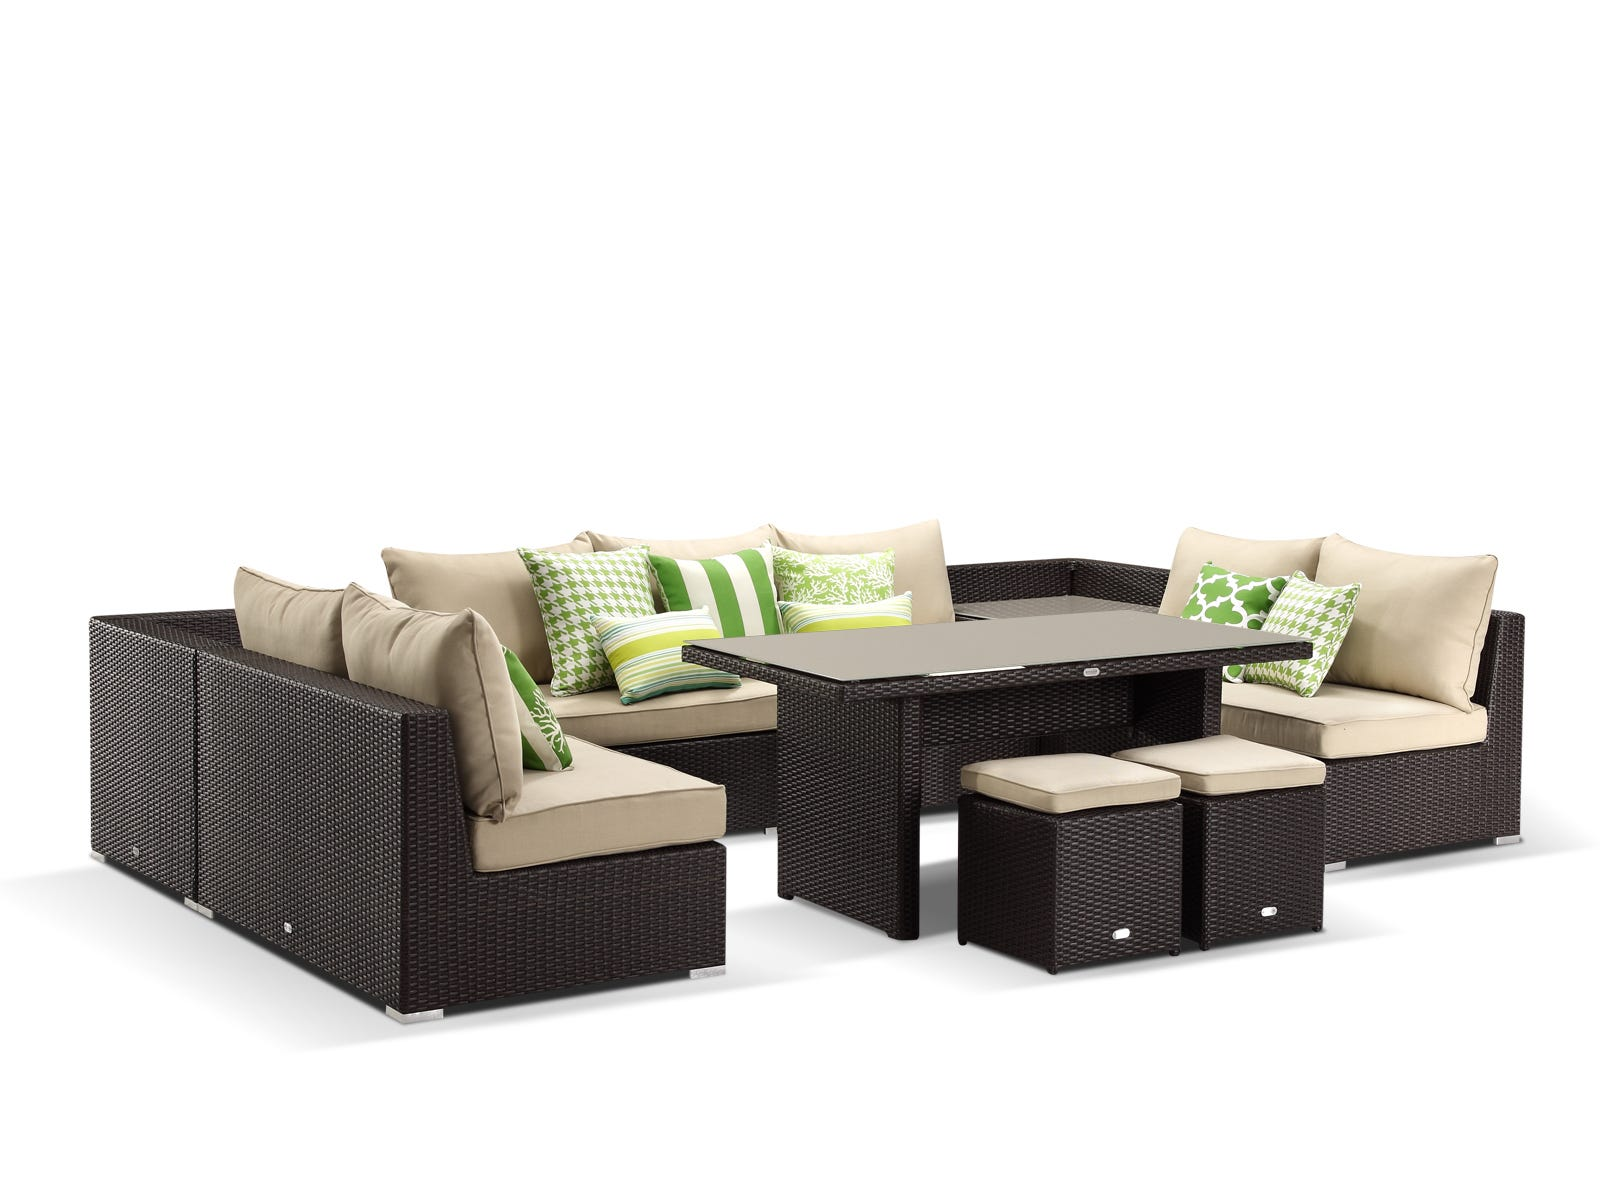 Outdoor furniture evolution dining out in comfort for Outdoor furniture